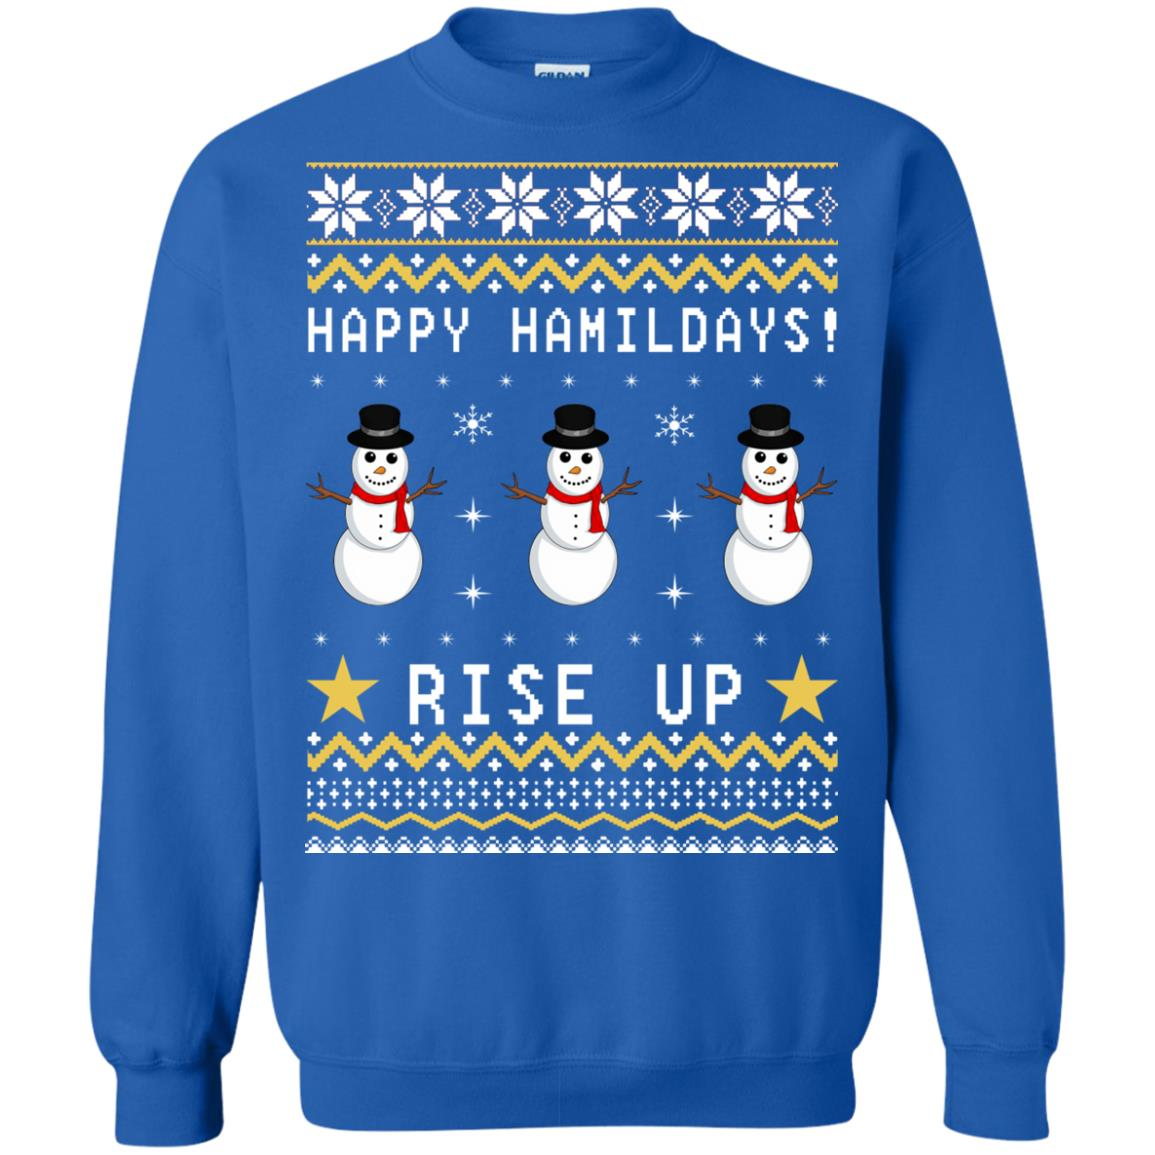 Happy Hamildays Rise Up Christmas Ugly Sweater, Shirt - image 3400